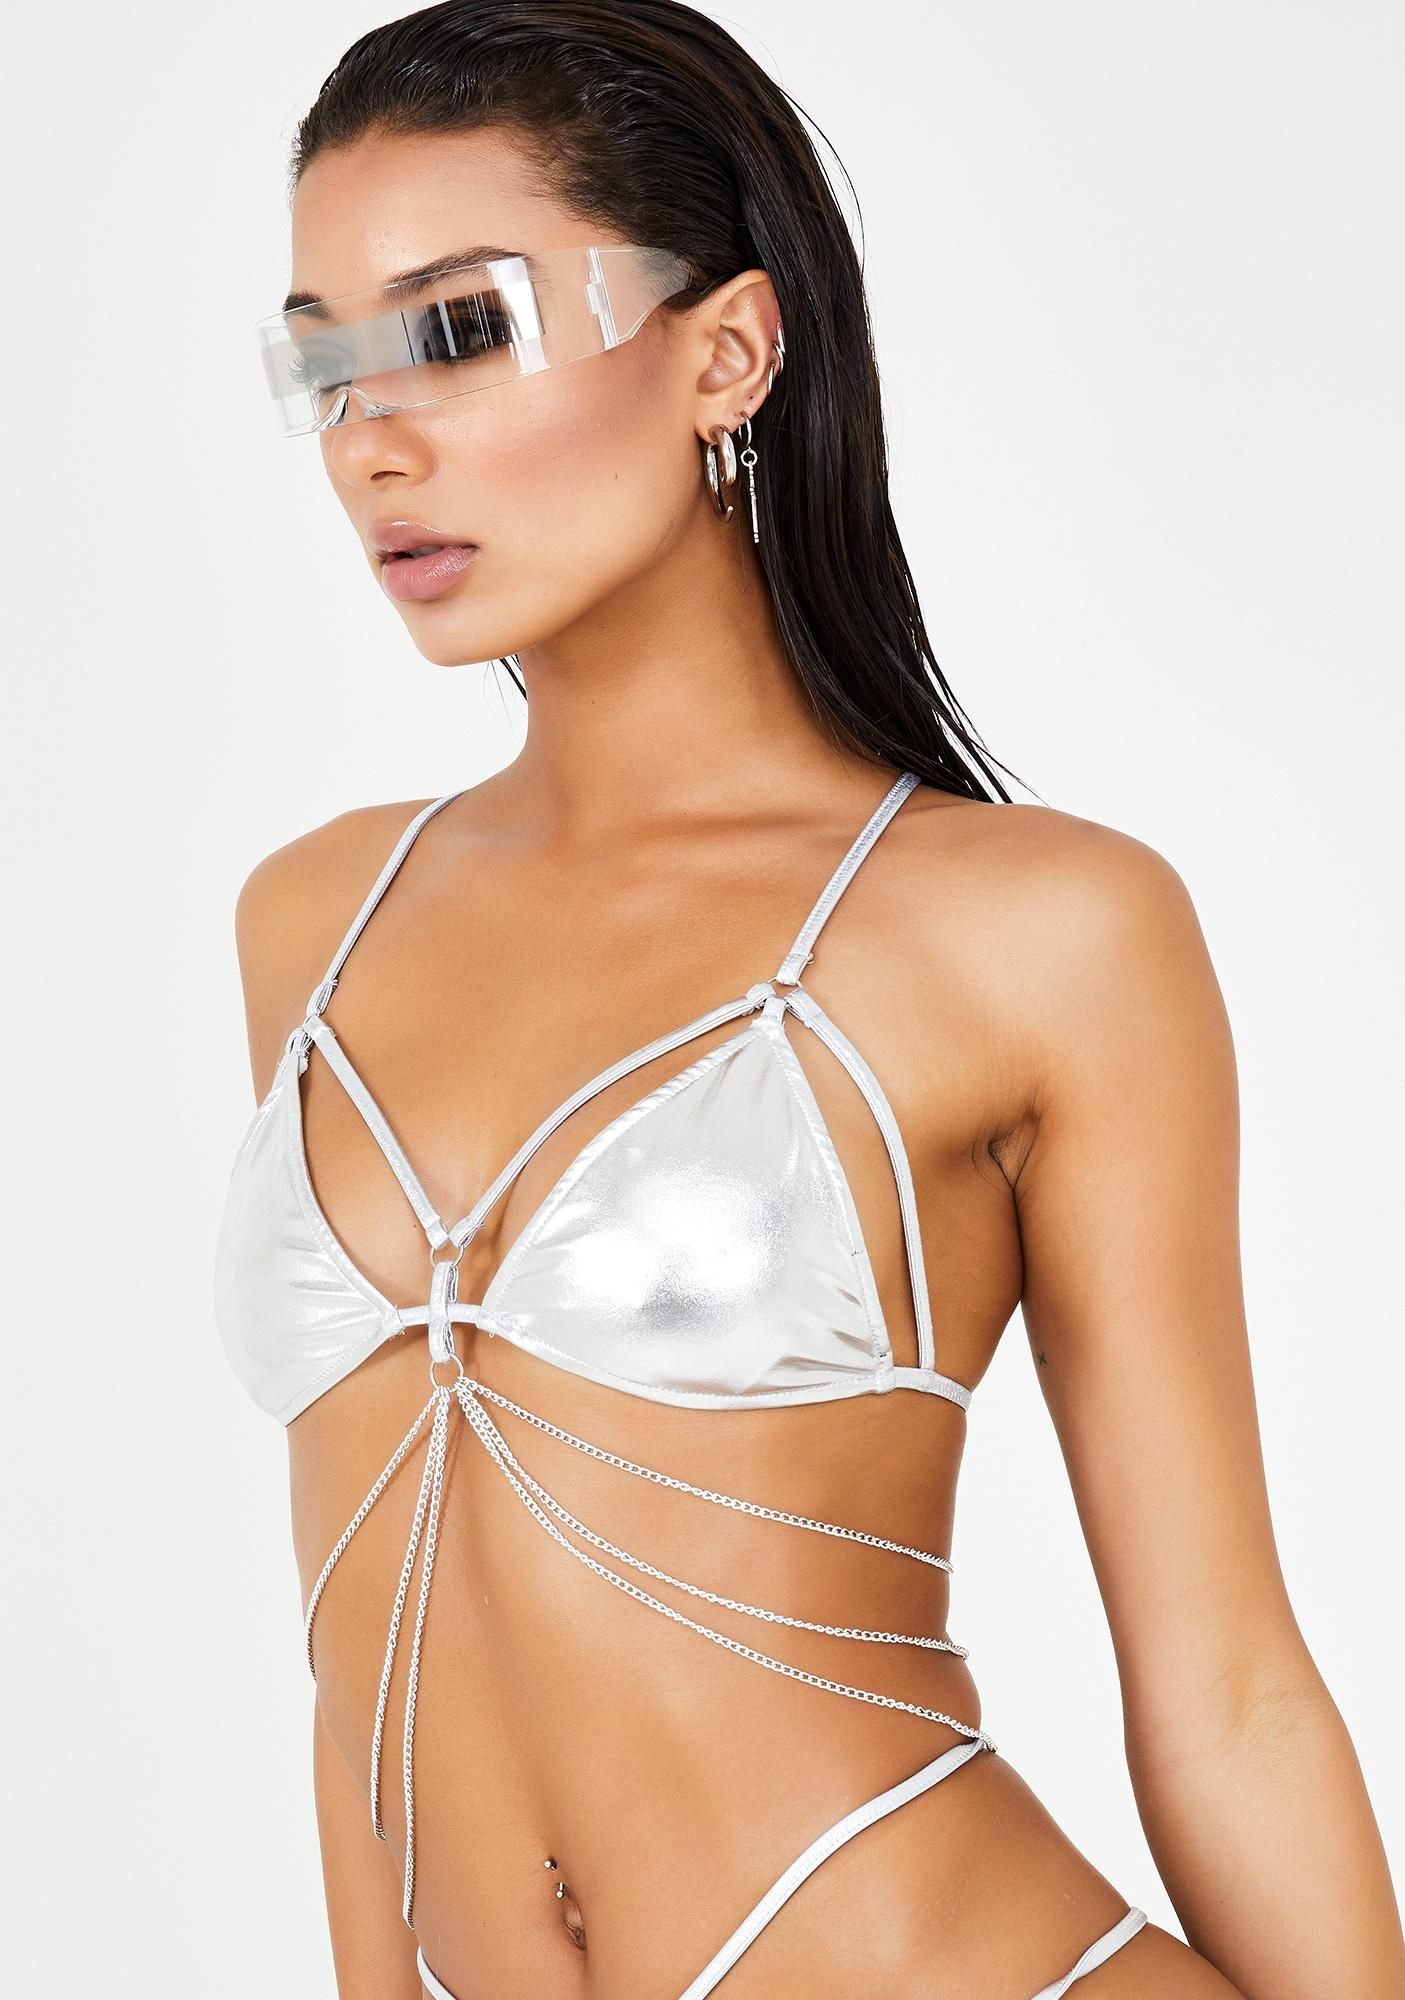 Club Exx Chrome Digital Ecstasy Harness Top